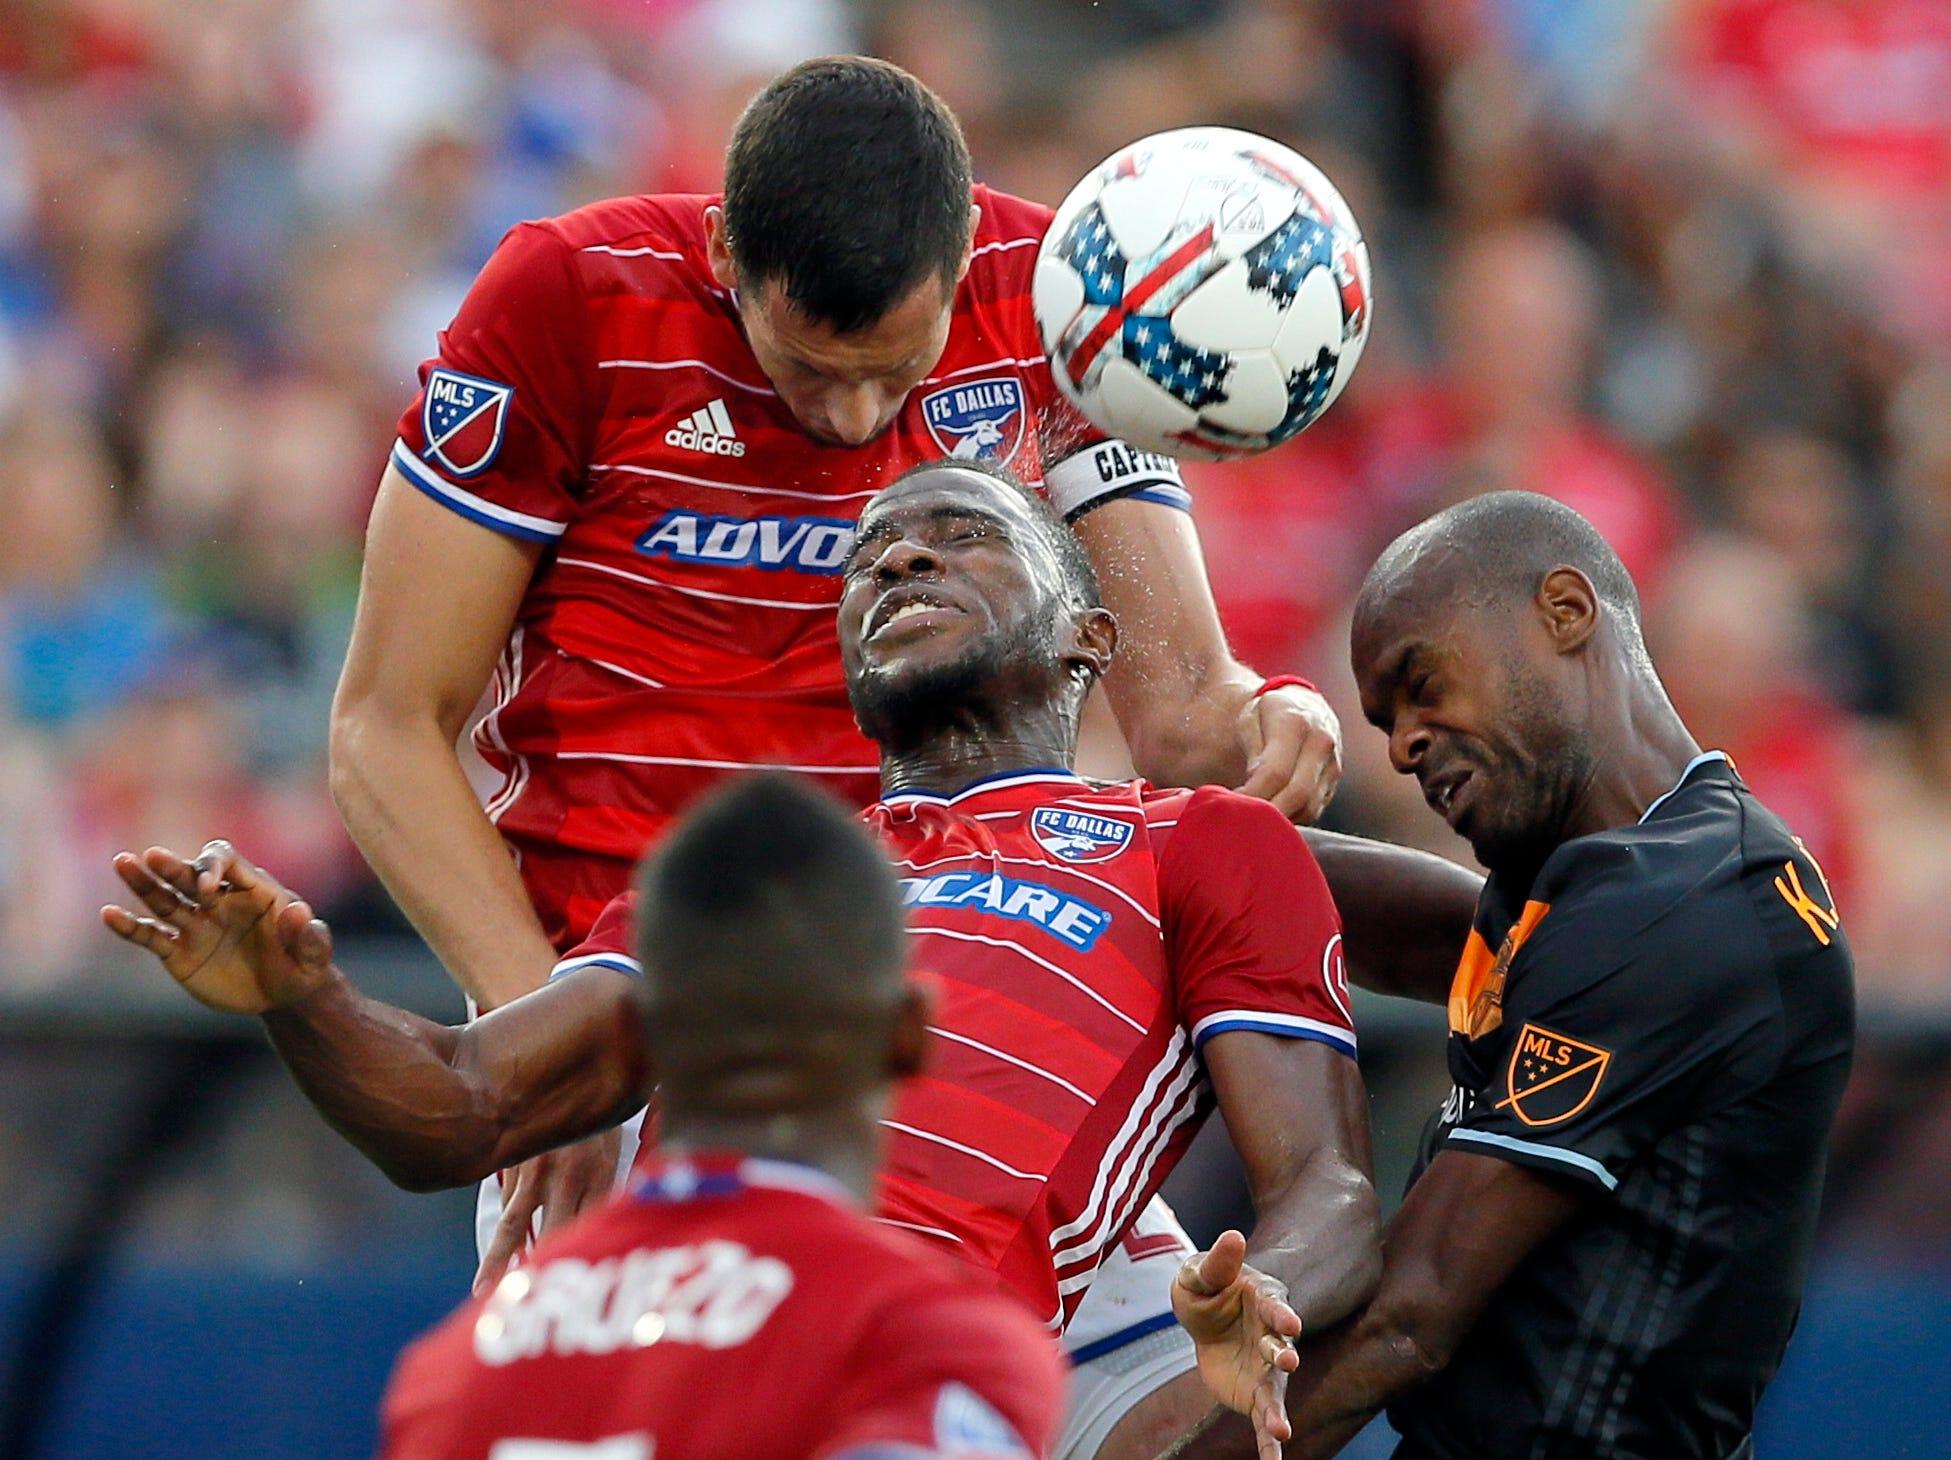 Deric makes 4 saves, Dynamo and FC Dallas tie 0-0